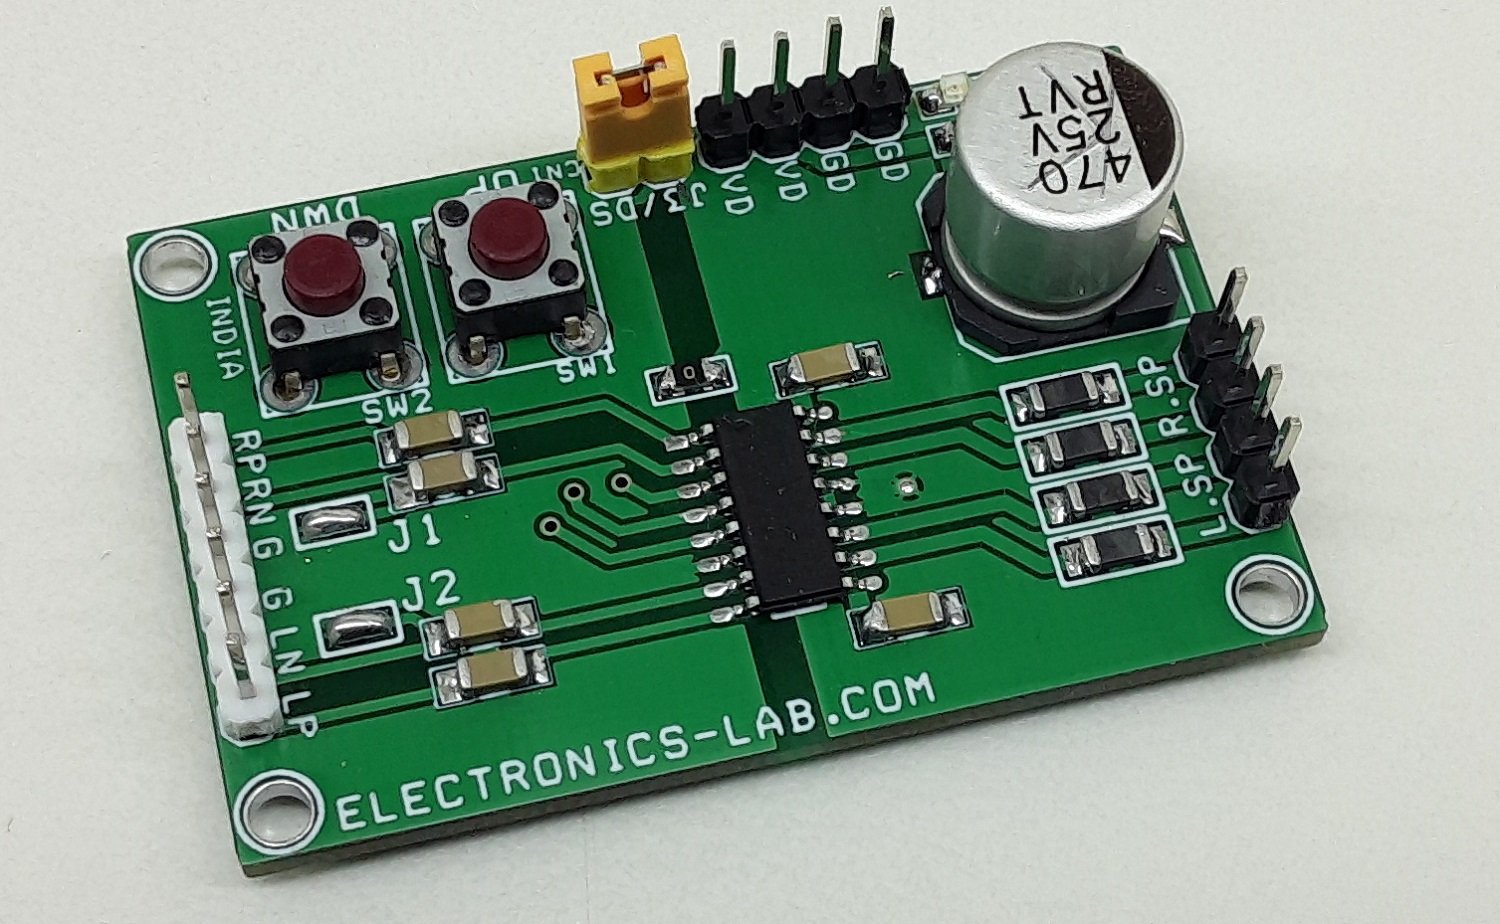 3W Stereo Differential Input CLASS-D Audio Amplifier with UP/DOWN Volume